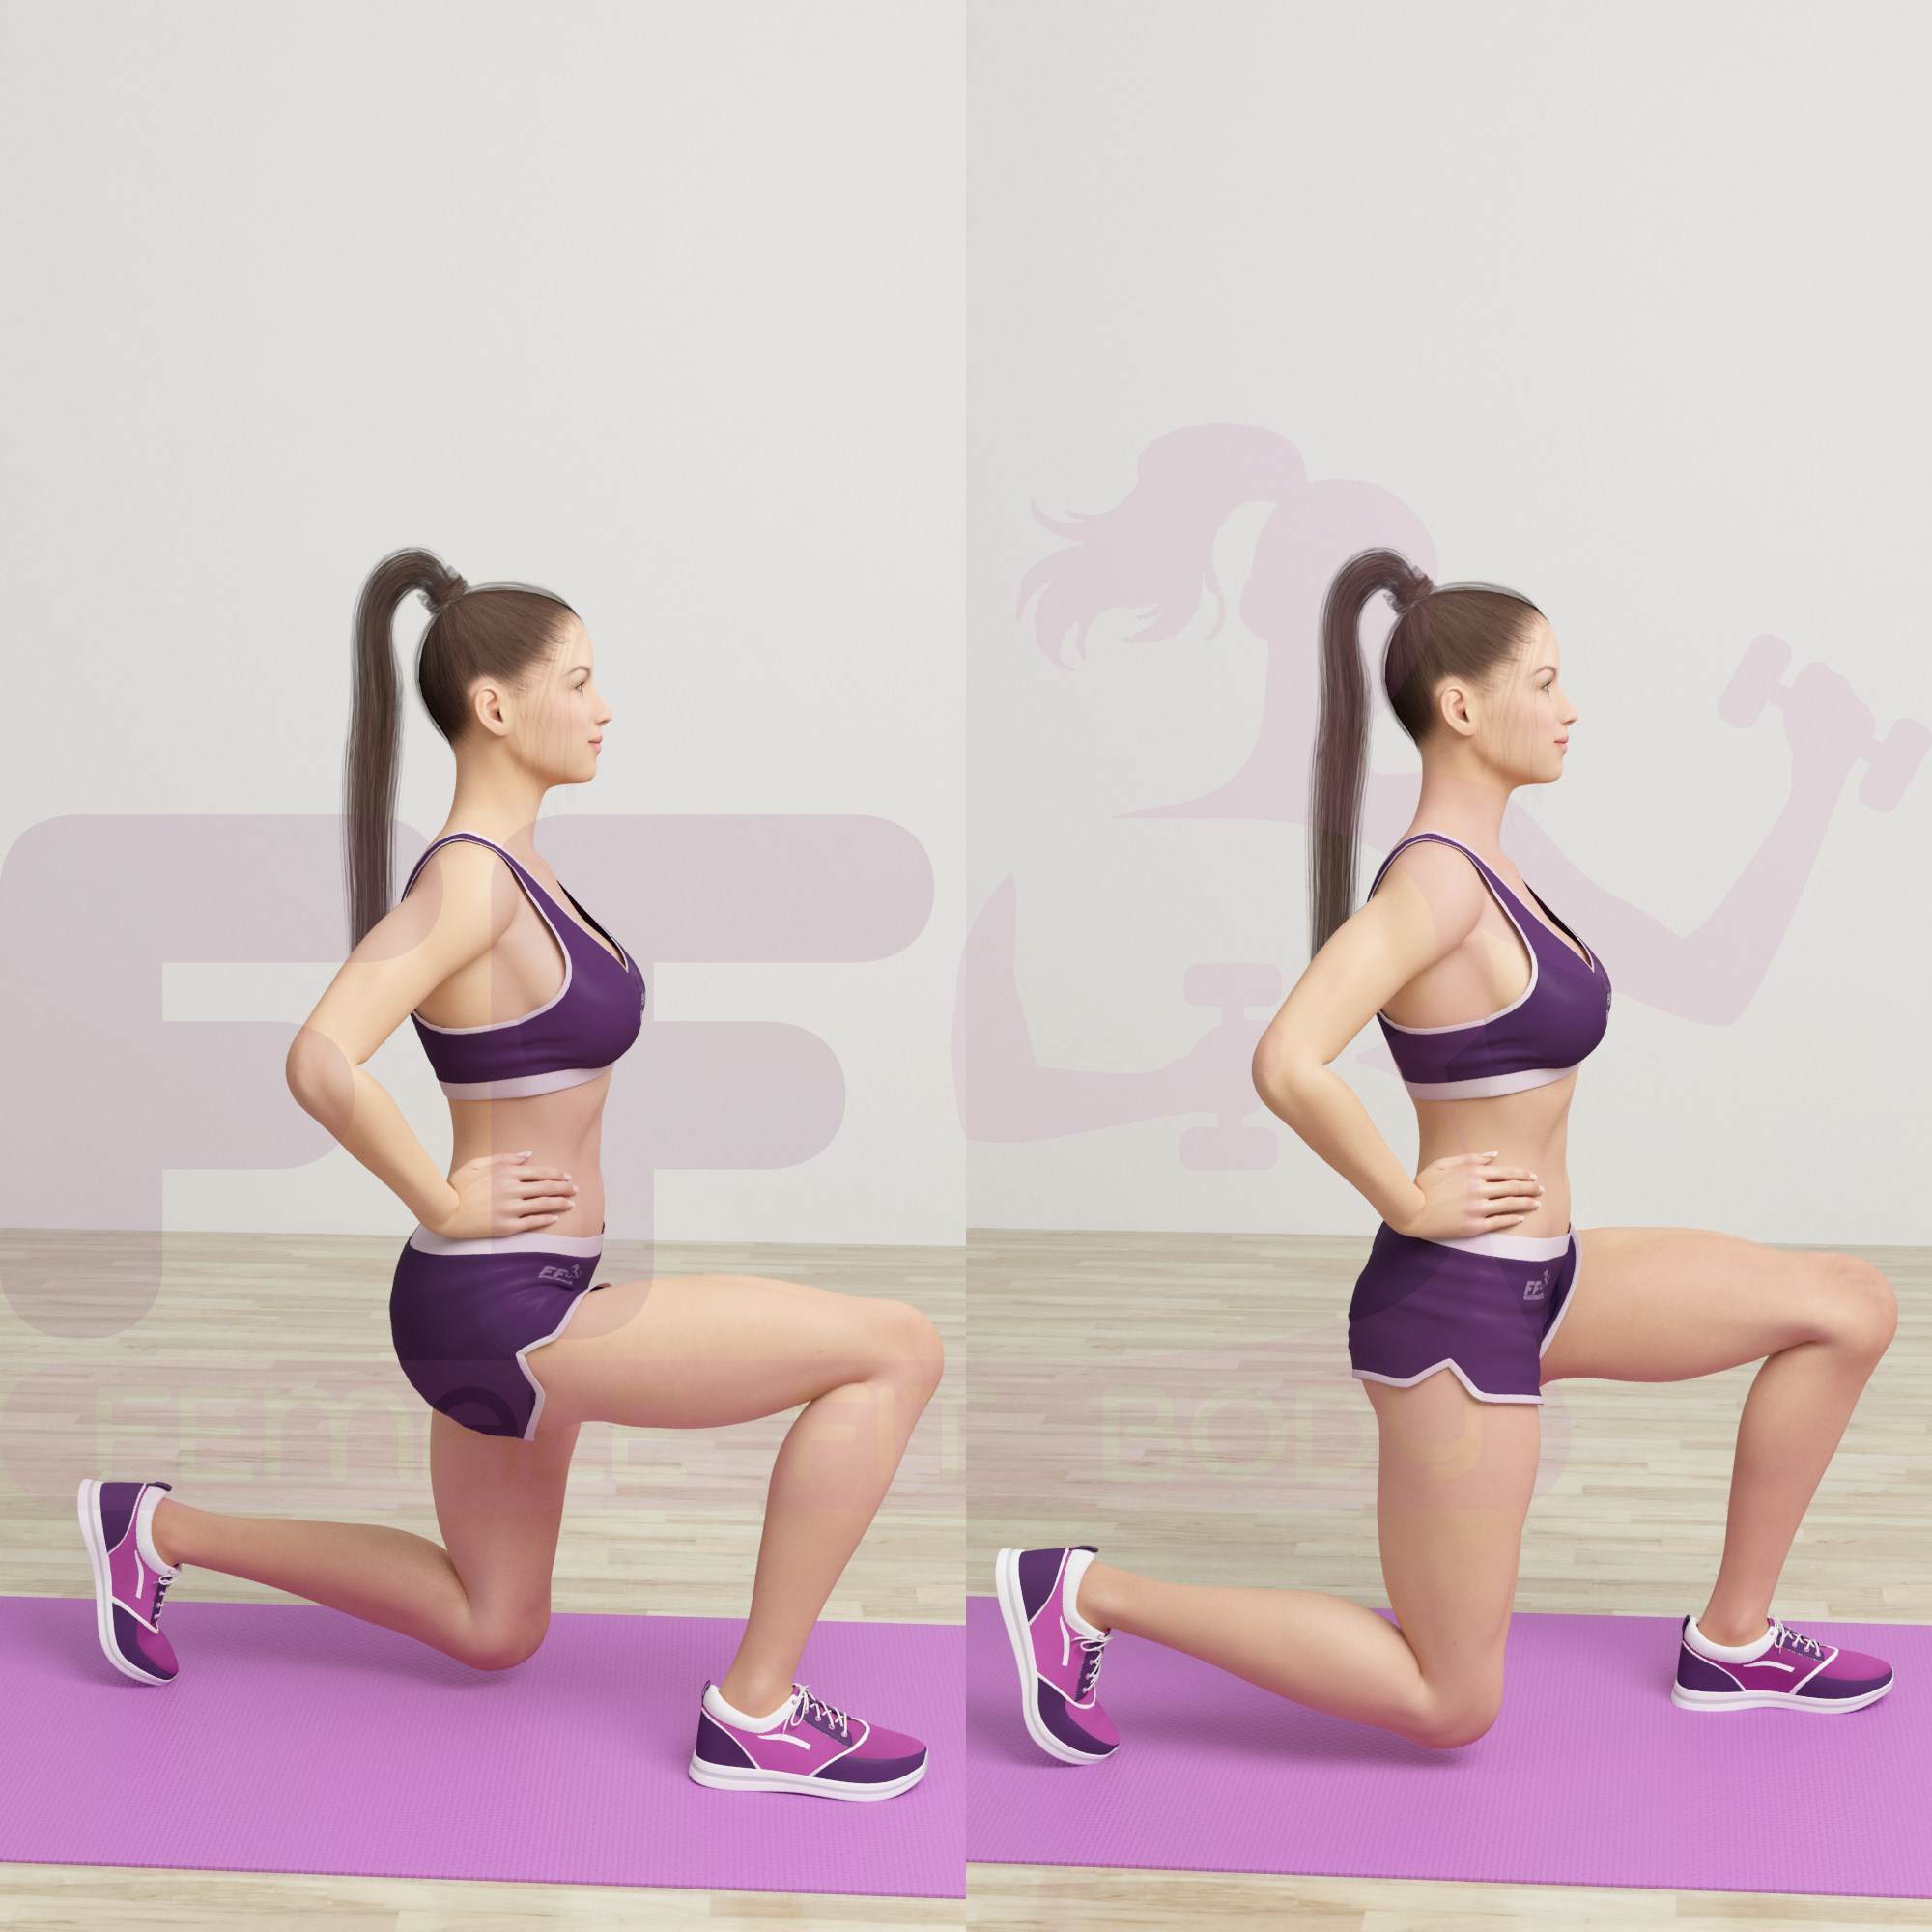 5.Lunges